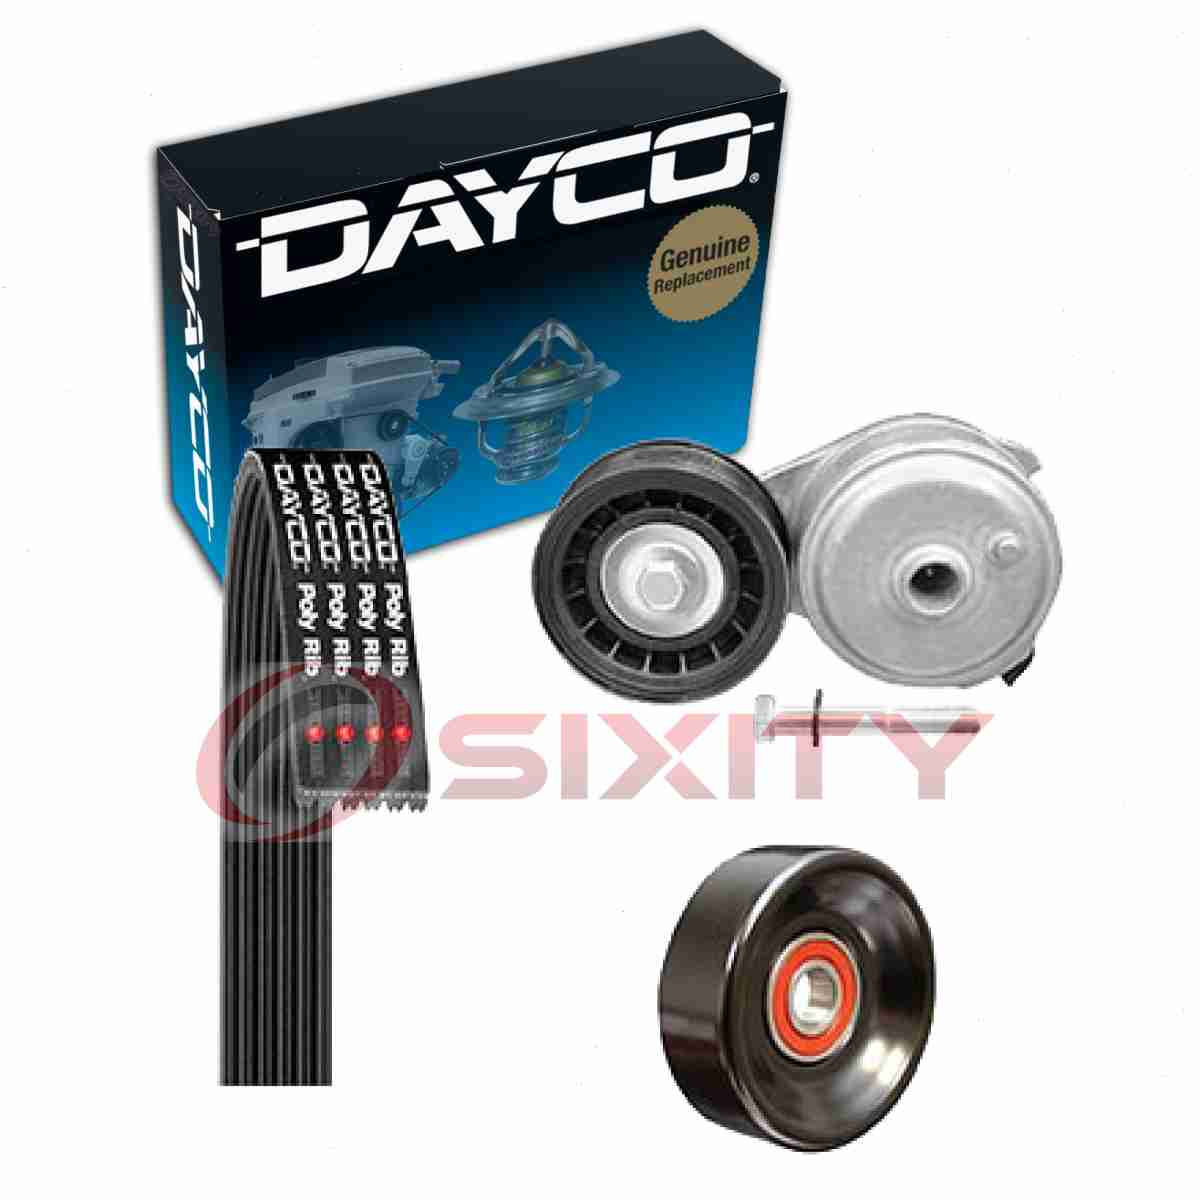 medium resolution of details about dayco serpentine belt drive component kit for 1996 2000 chevrolet tahoe 5 7l vv